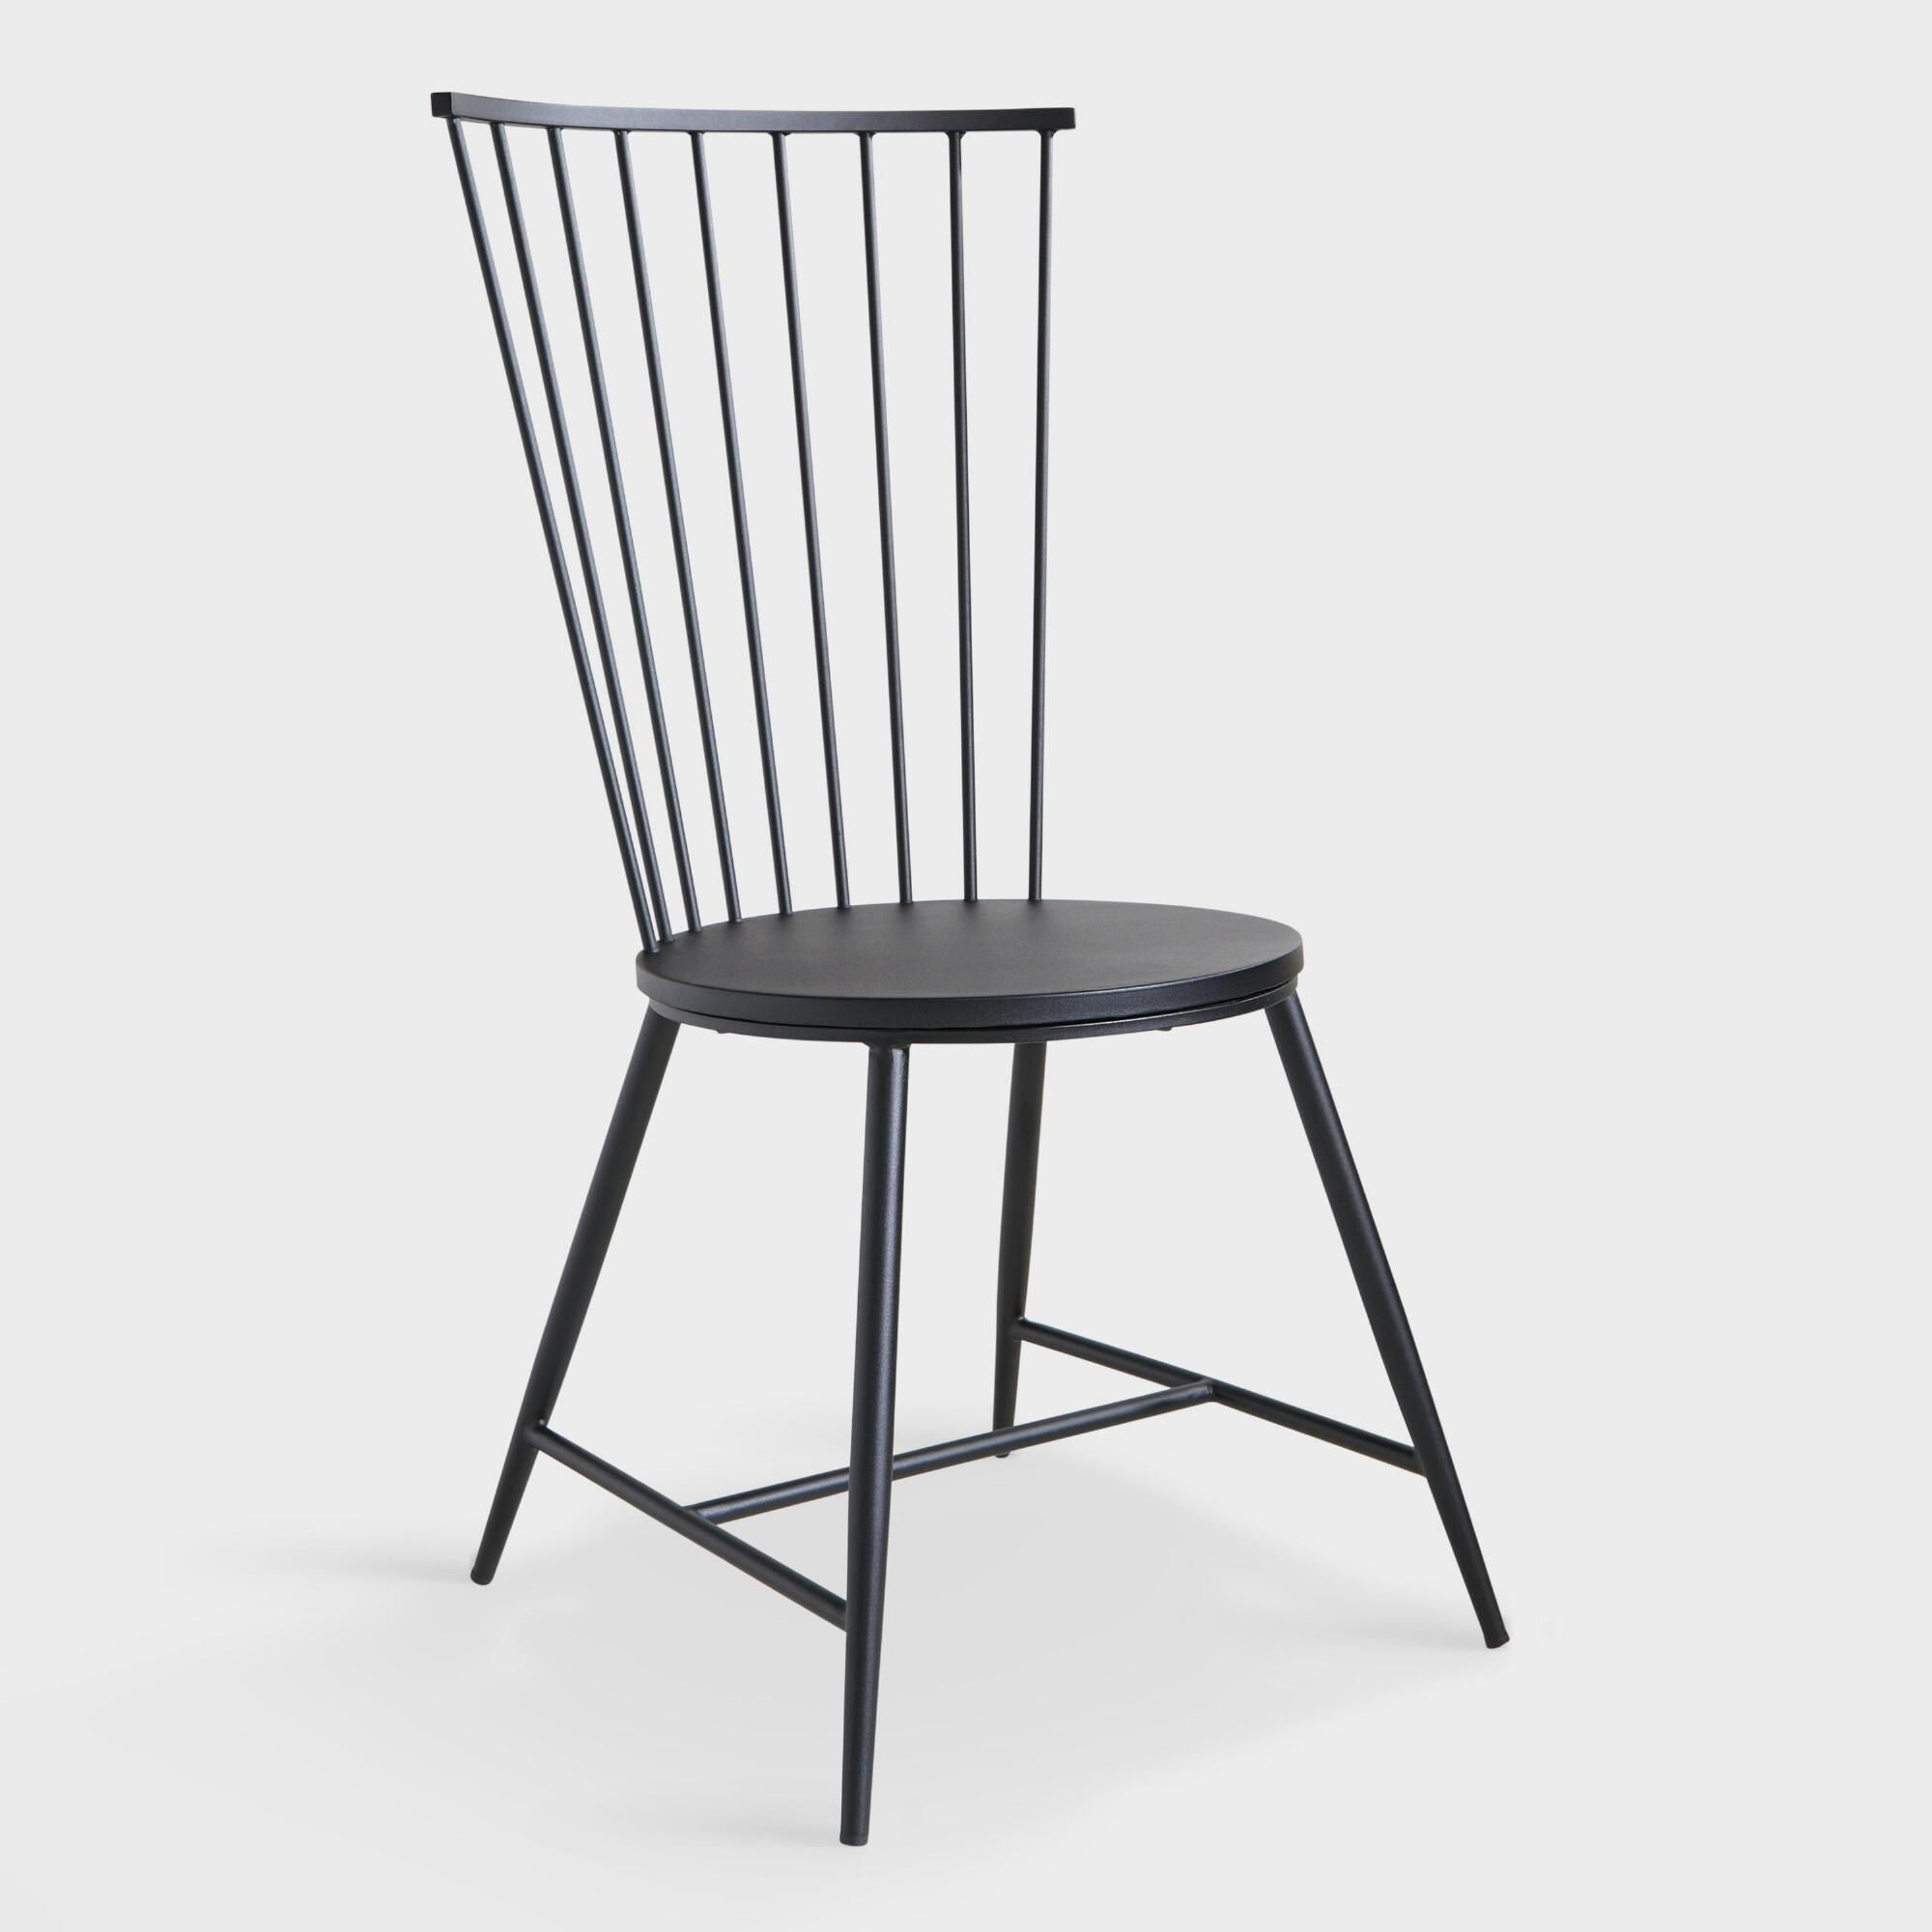 Cheap Black Dining Table And Chairs: Black Steel Neal Dining Chair By World Market